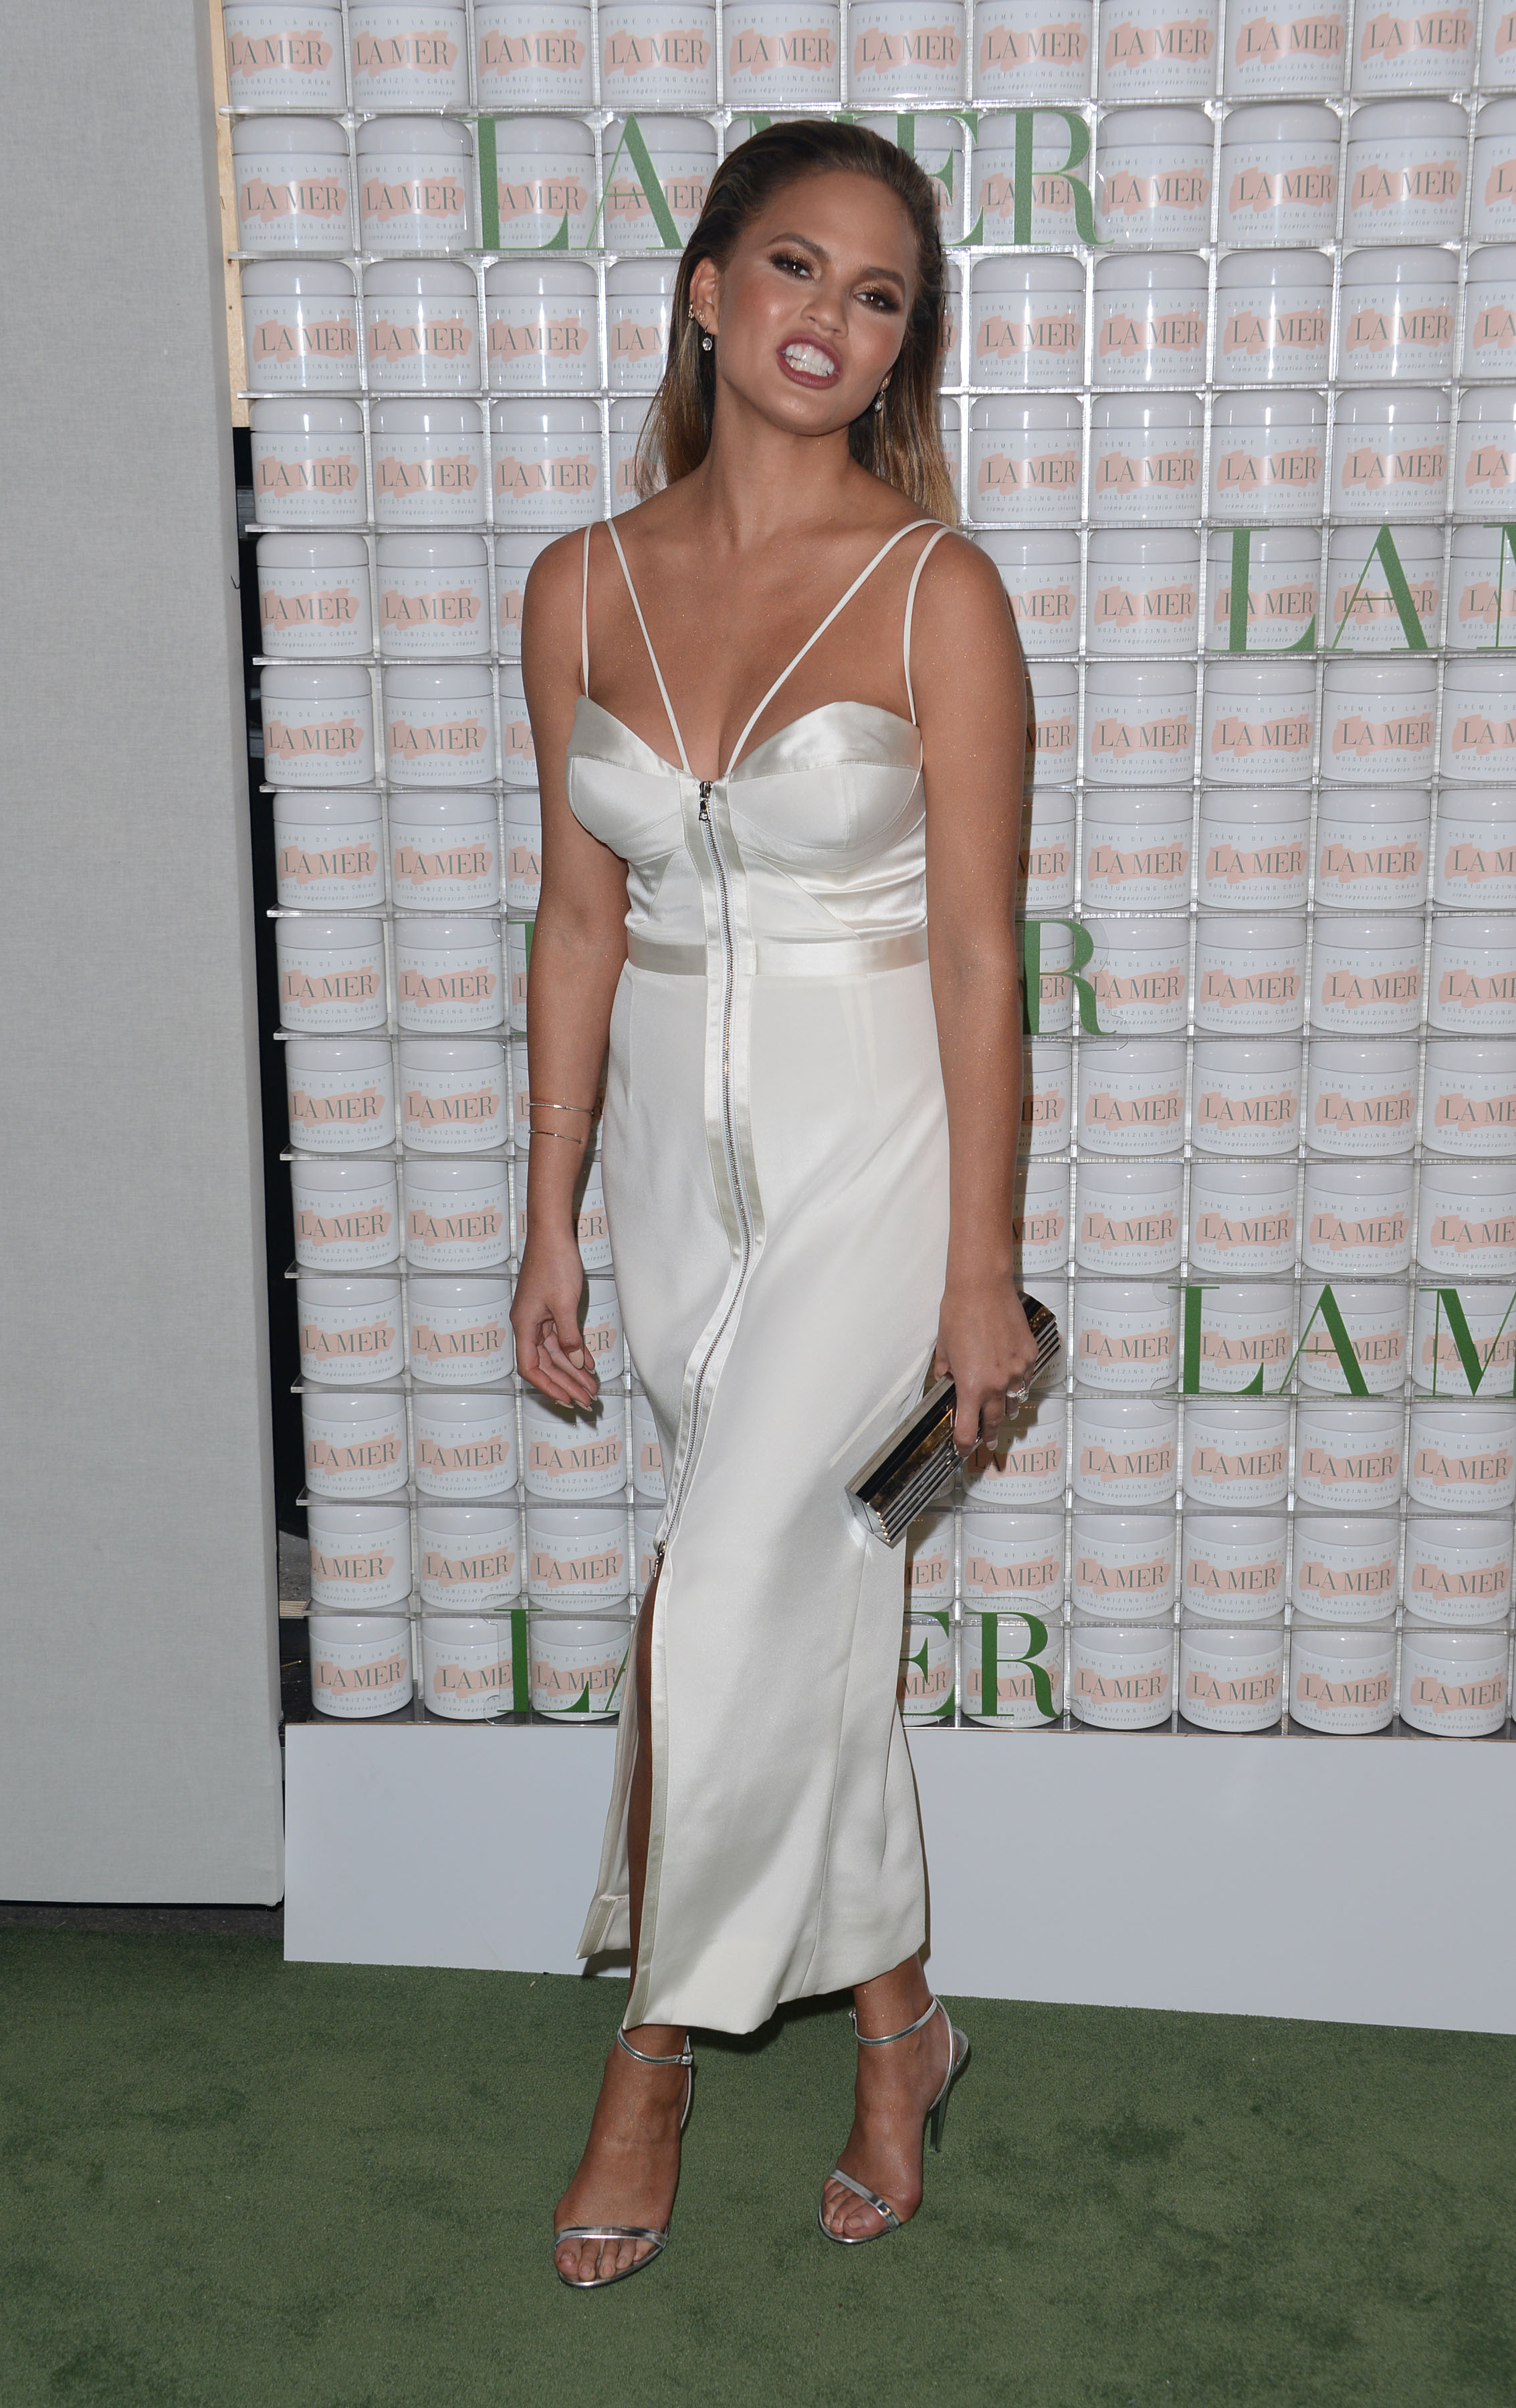 **USA, Australia, New Zealand ONLY** Hollywood, CA - Chrissy Teigen strikes a pose on the green carpet at La Mer Skincare's 50th Celebration Party held at Siren Studios in Hollywood. AKM-GSI October 13, 2015 **USA, Australia, New Zealand ONLY** To License These Photos, Please Contact : Steve Ginsburg (310) 505-8447 (323) 423-9397 steve@akmgsi.com sales@akmgsi.com or Maria Buda (917) 242-1505 mbuda@akmgsi.com ginsburgspalyinc@gmail.com